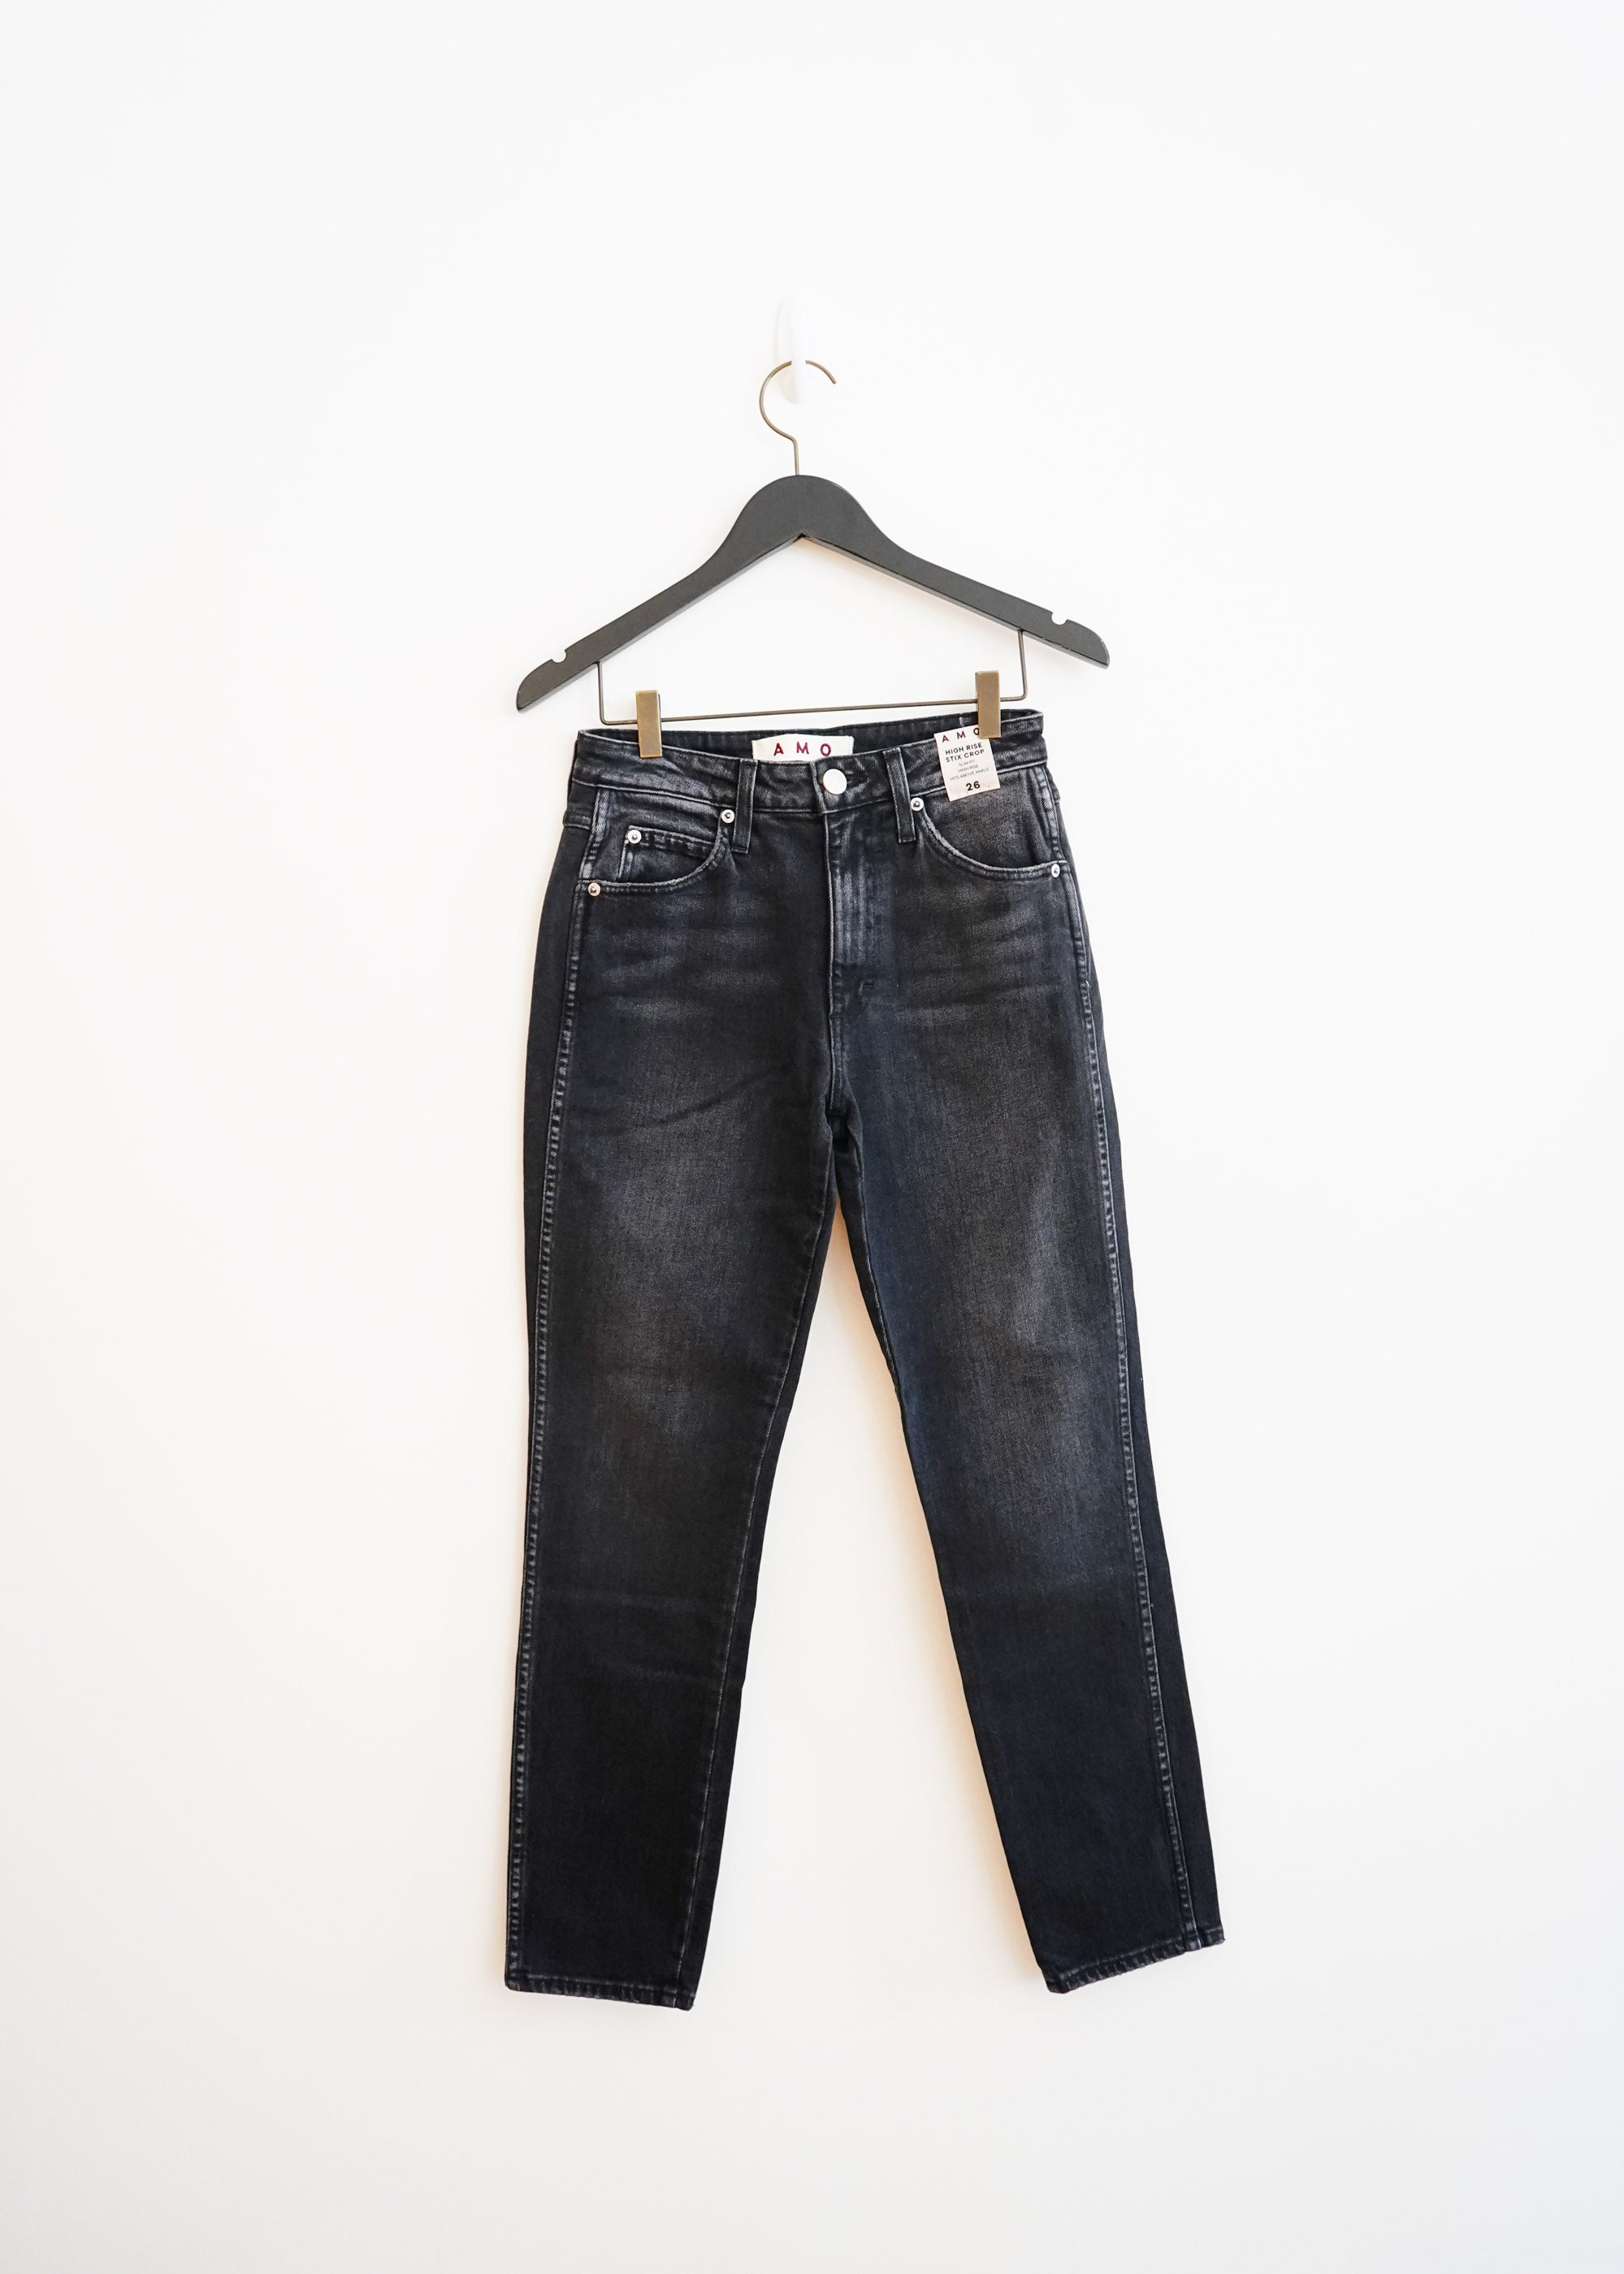 High Rise Stix Crop- Washed Black